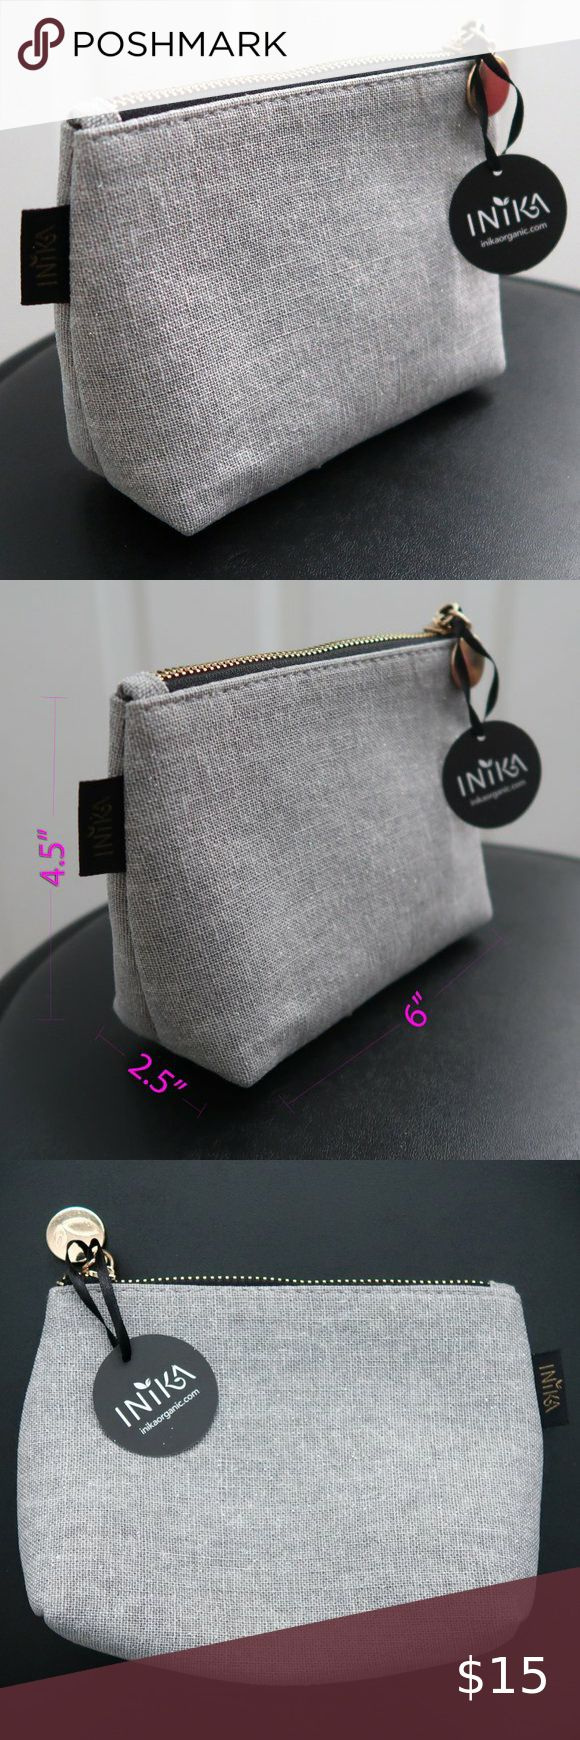 INIKA brand new Makeup Cosmetic Bag NWT sparkly Brand new